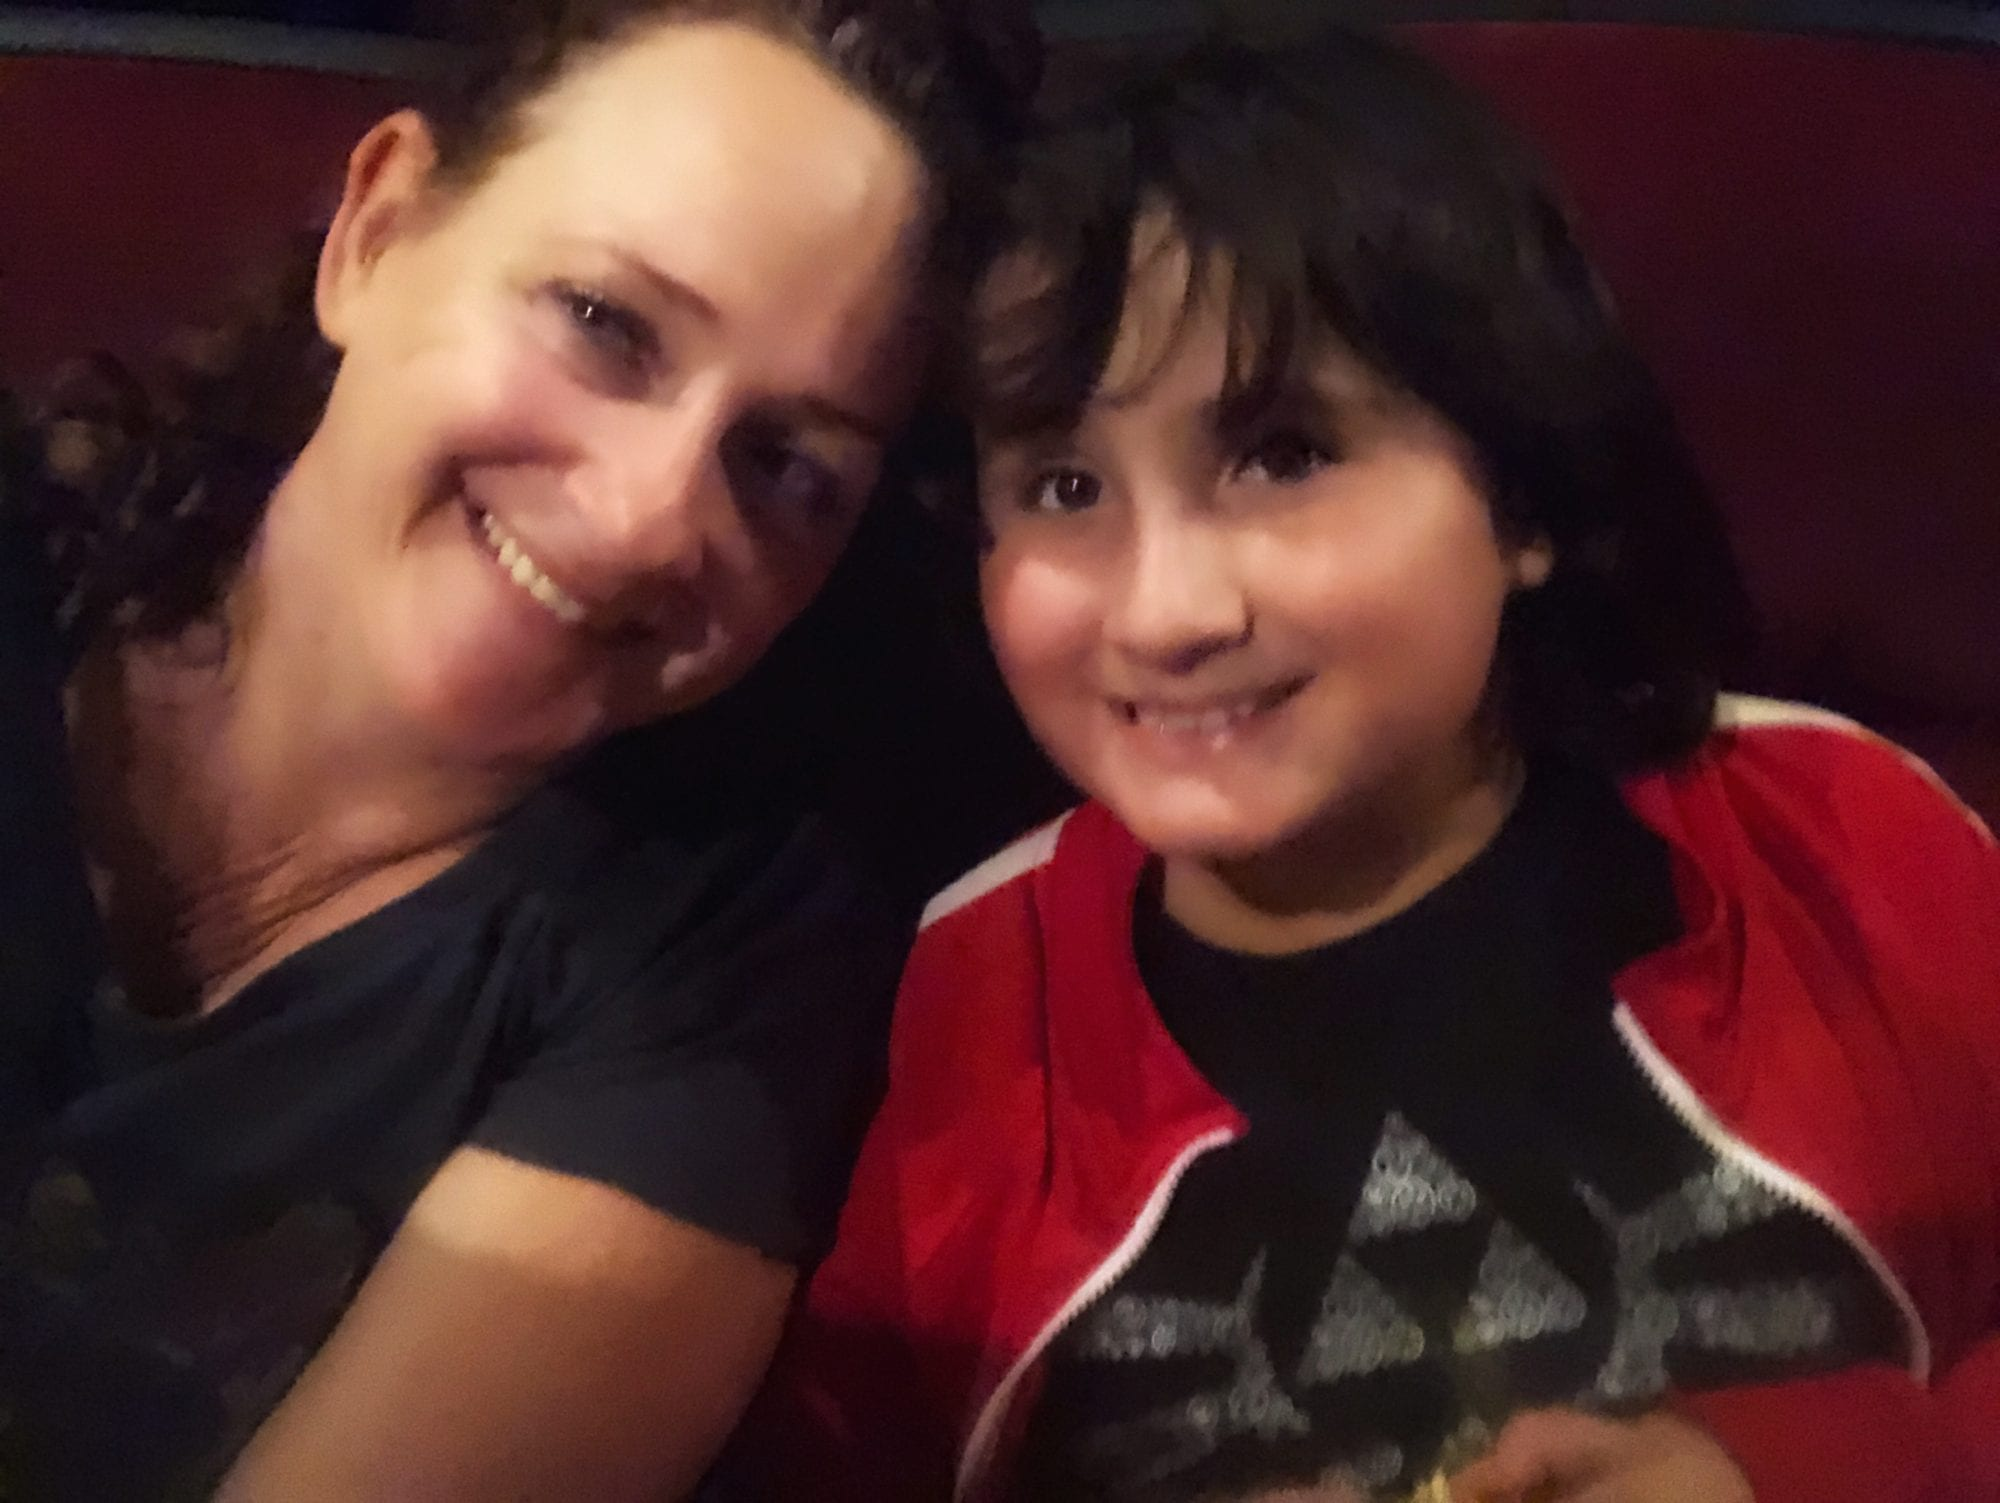 free disability companion pass at the movie theatre, image of Woman with dark hair and a boy with dark hair, both are smiling